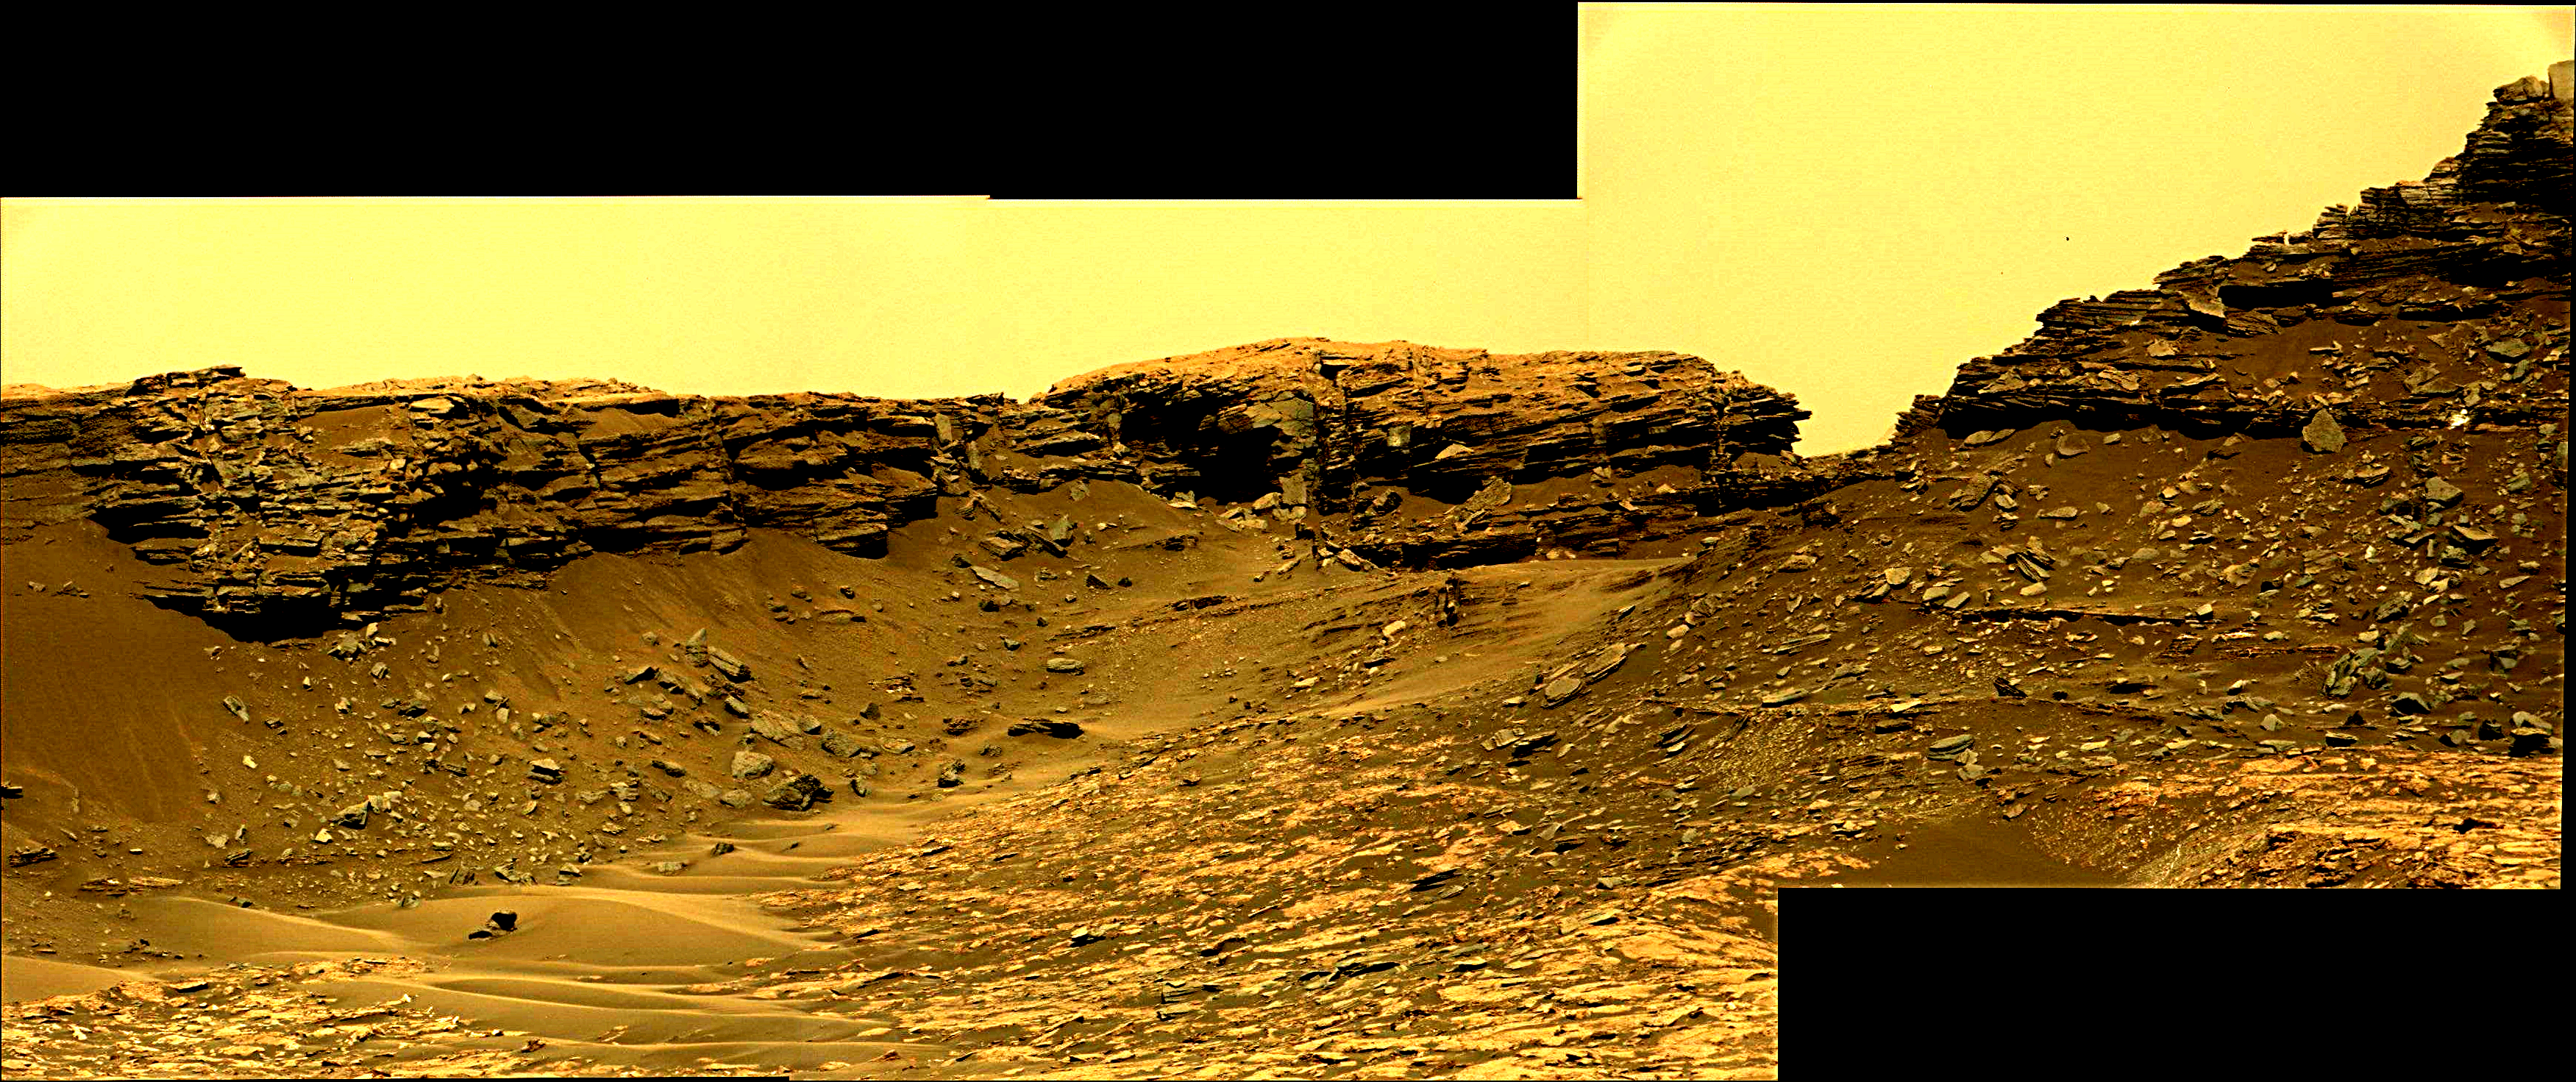 panoramic-curiosity-rover-view-2-3e-sol-1454-was-life-on-mars